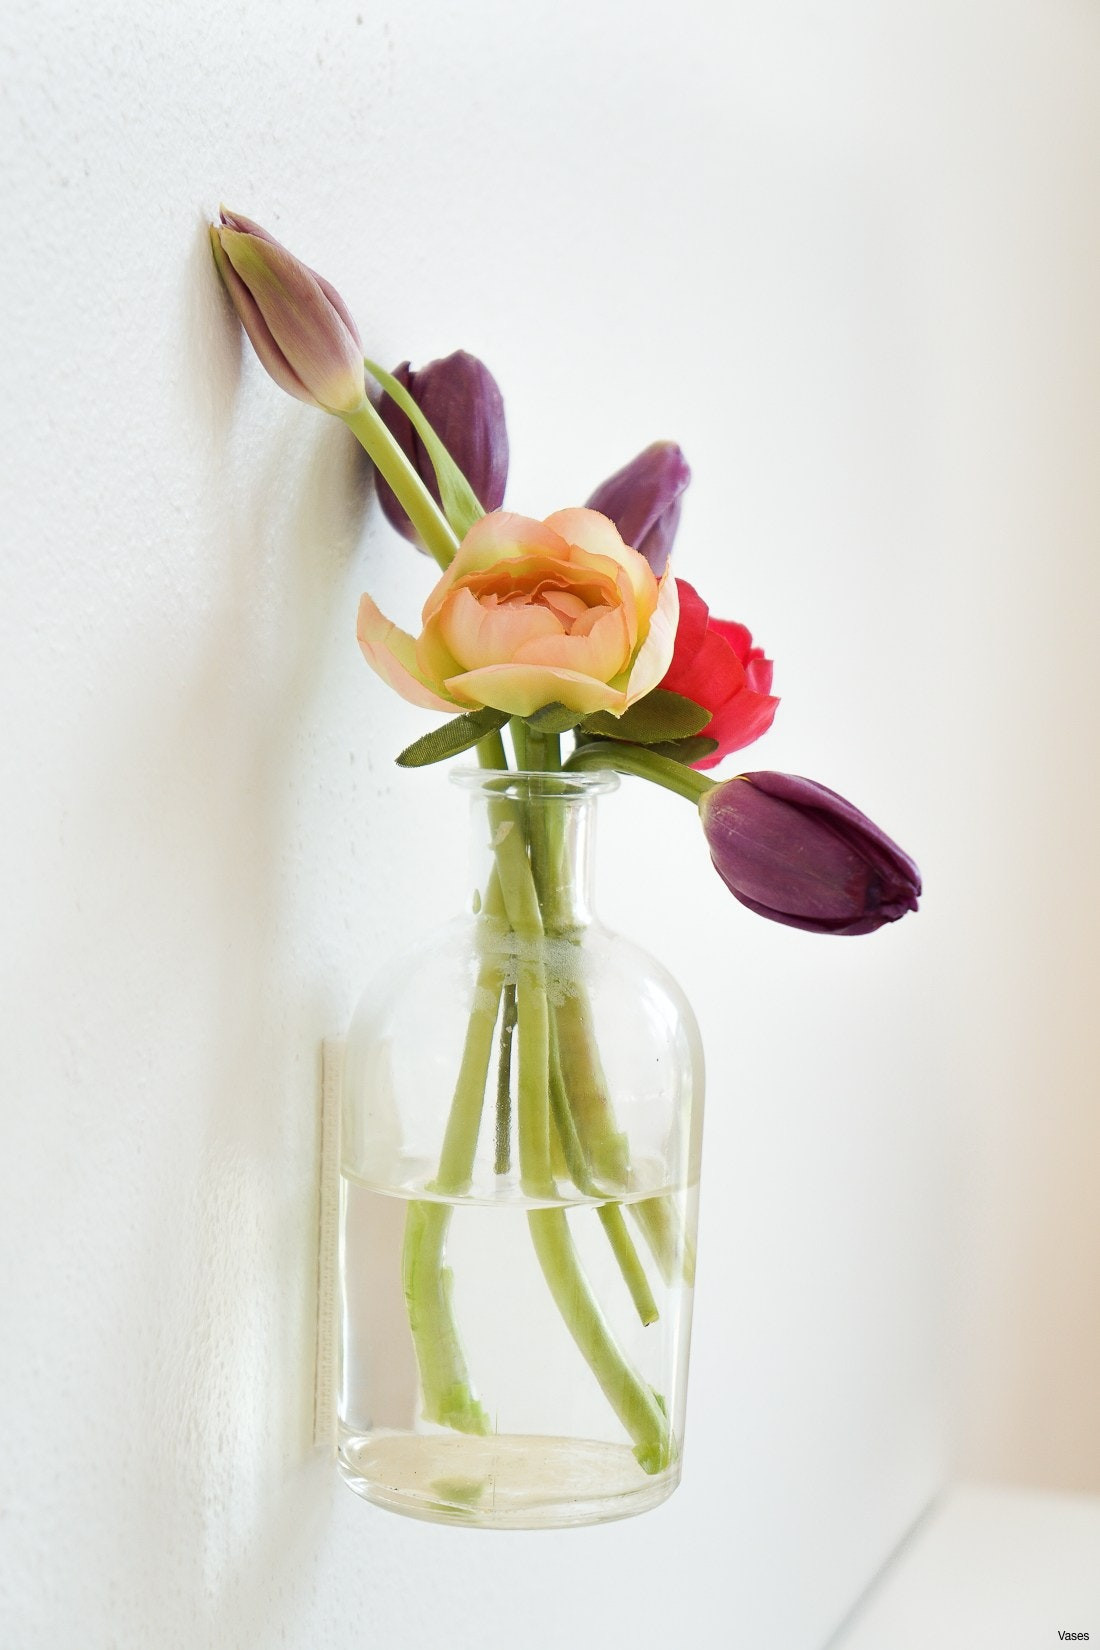 Flower Vase Of Wall Flower Vases Stock Il Fullxfull L7e9h Vases Wall Flower Vase Intended for Il Fullxfull L7e9h Vases Wall Flower Vase Zoomi 0d Decor Inspiration